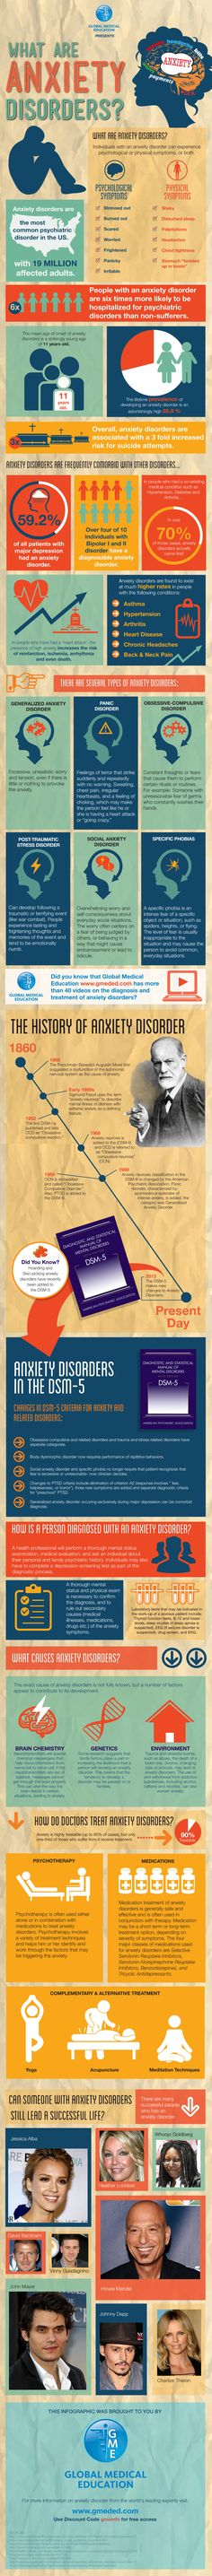 HD/jHD: What are anxiety disorders?